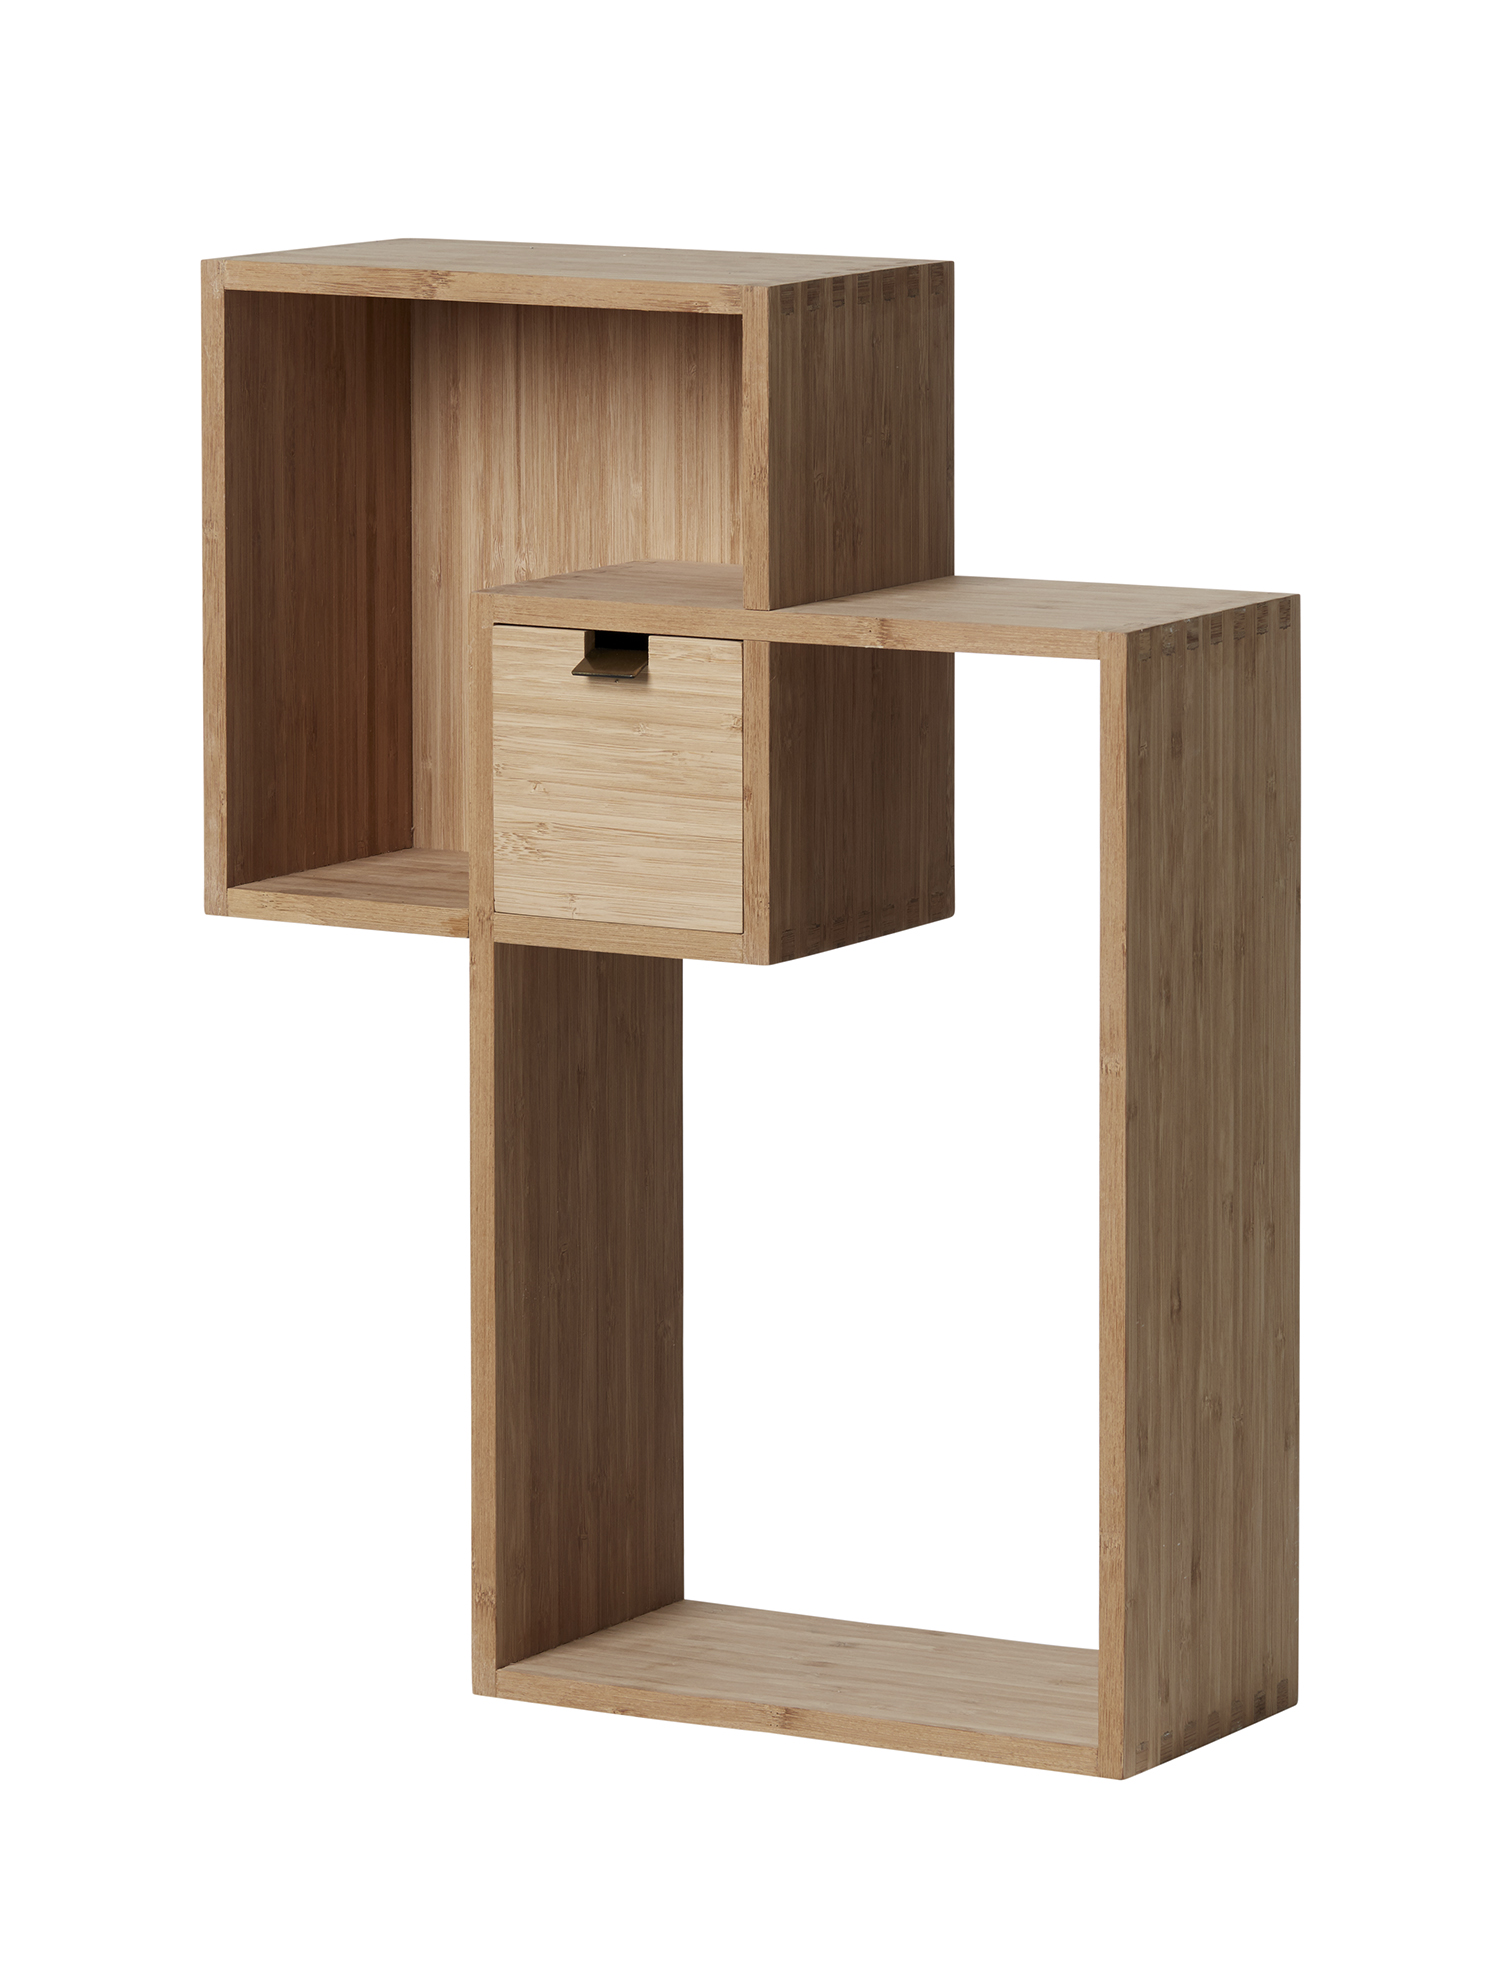 Mondrian_shelves_vertical.jpg